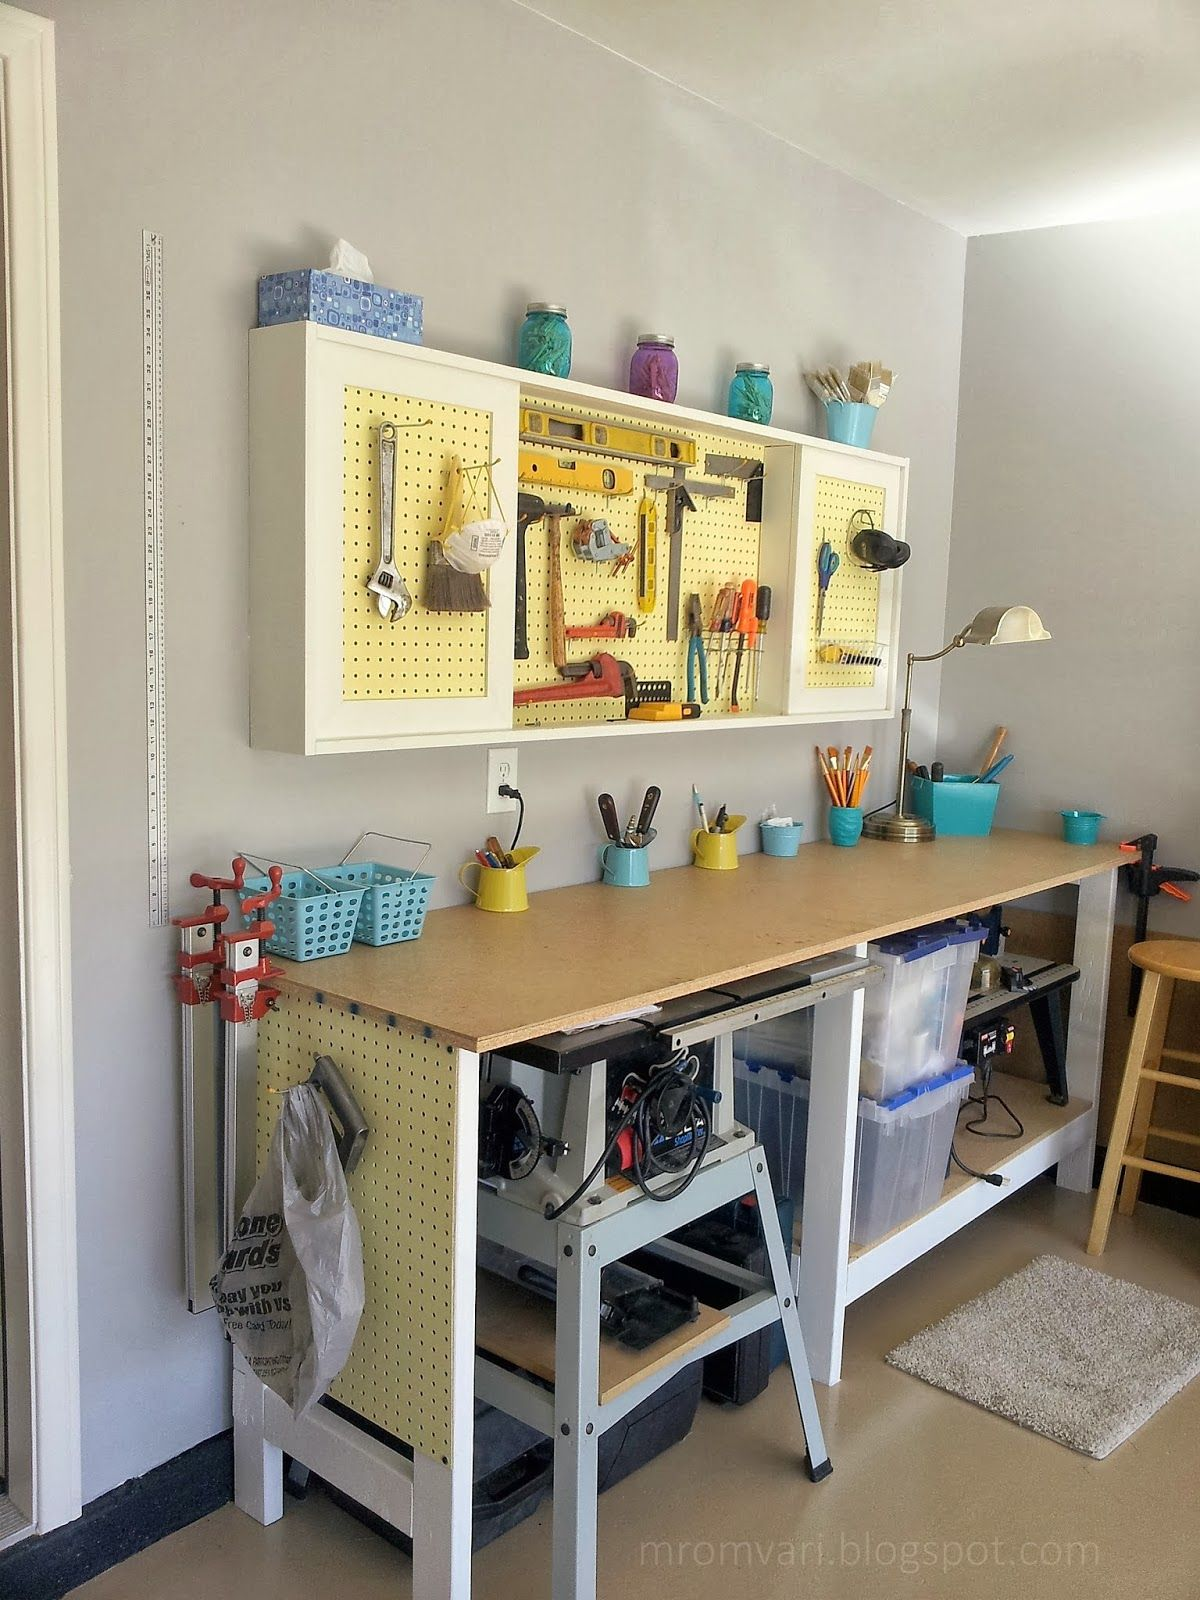 Cabinets For Workshop Build An Organized Pegboard Tool Cabinet And Simple Workbench